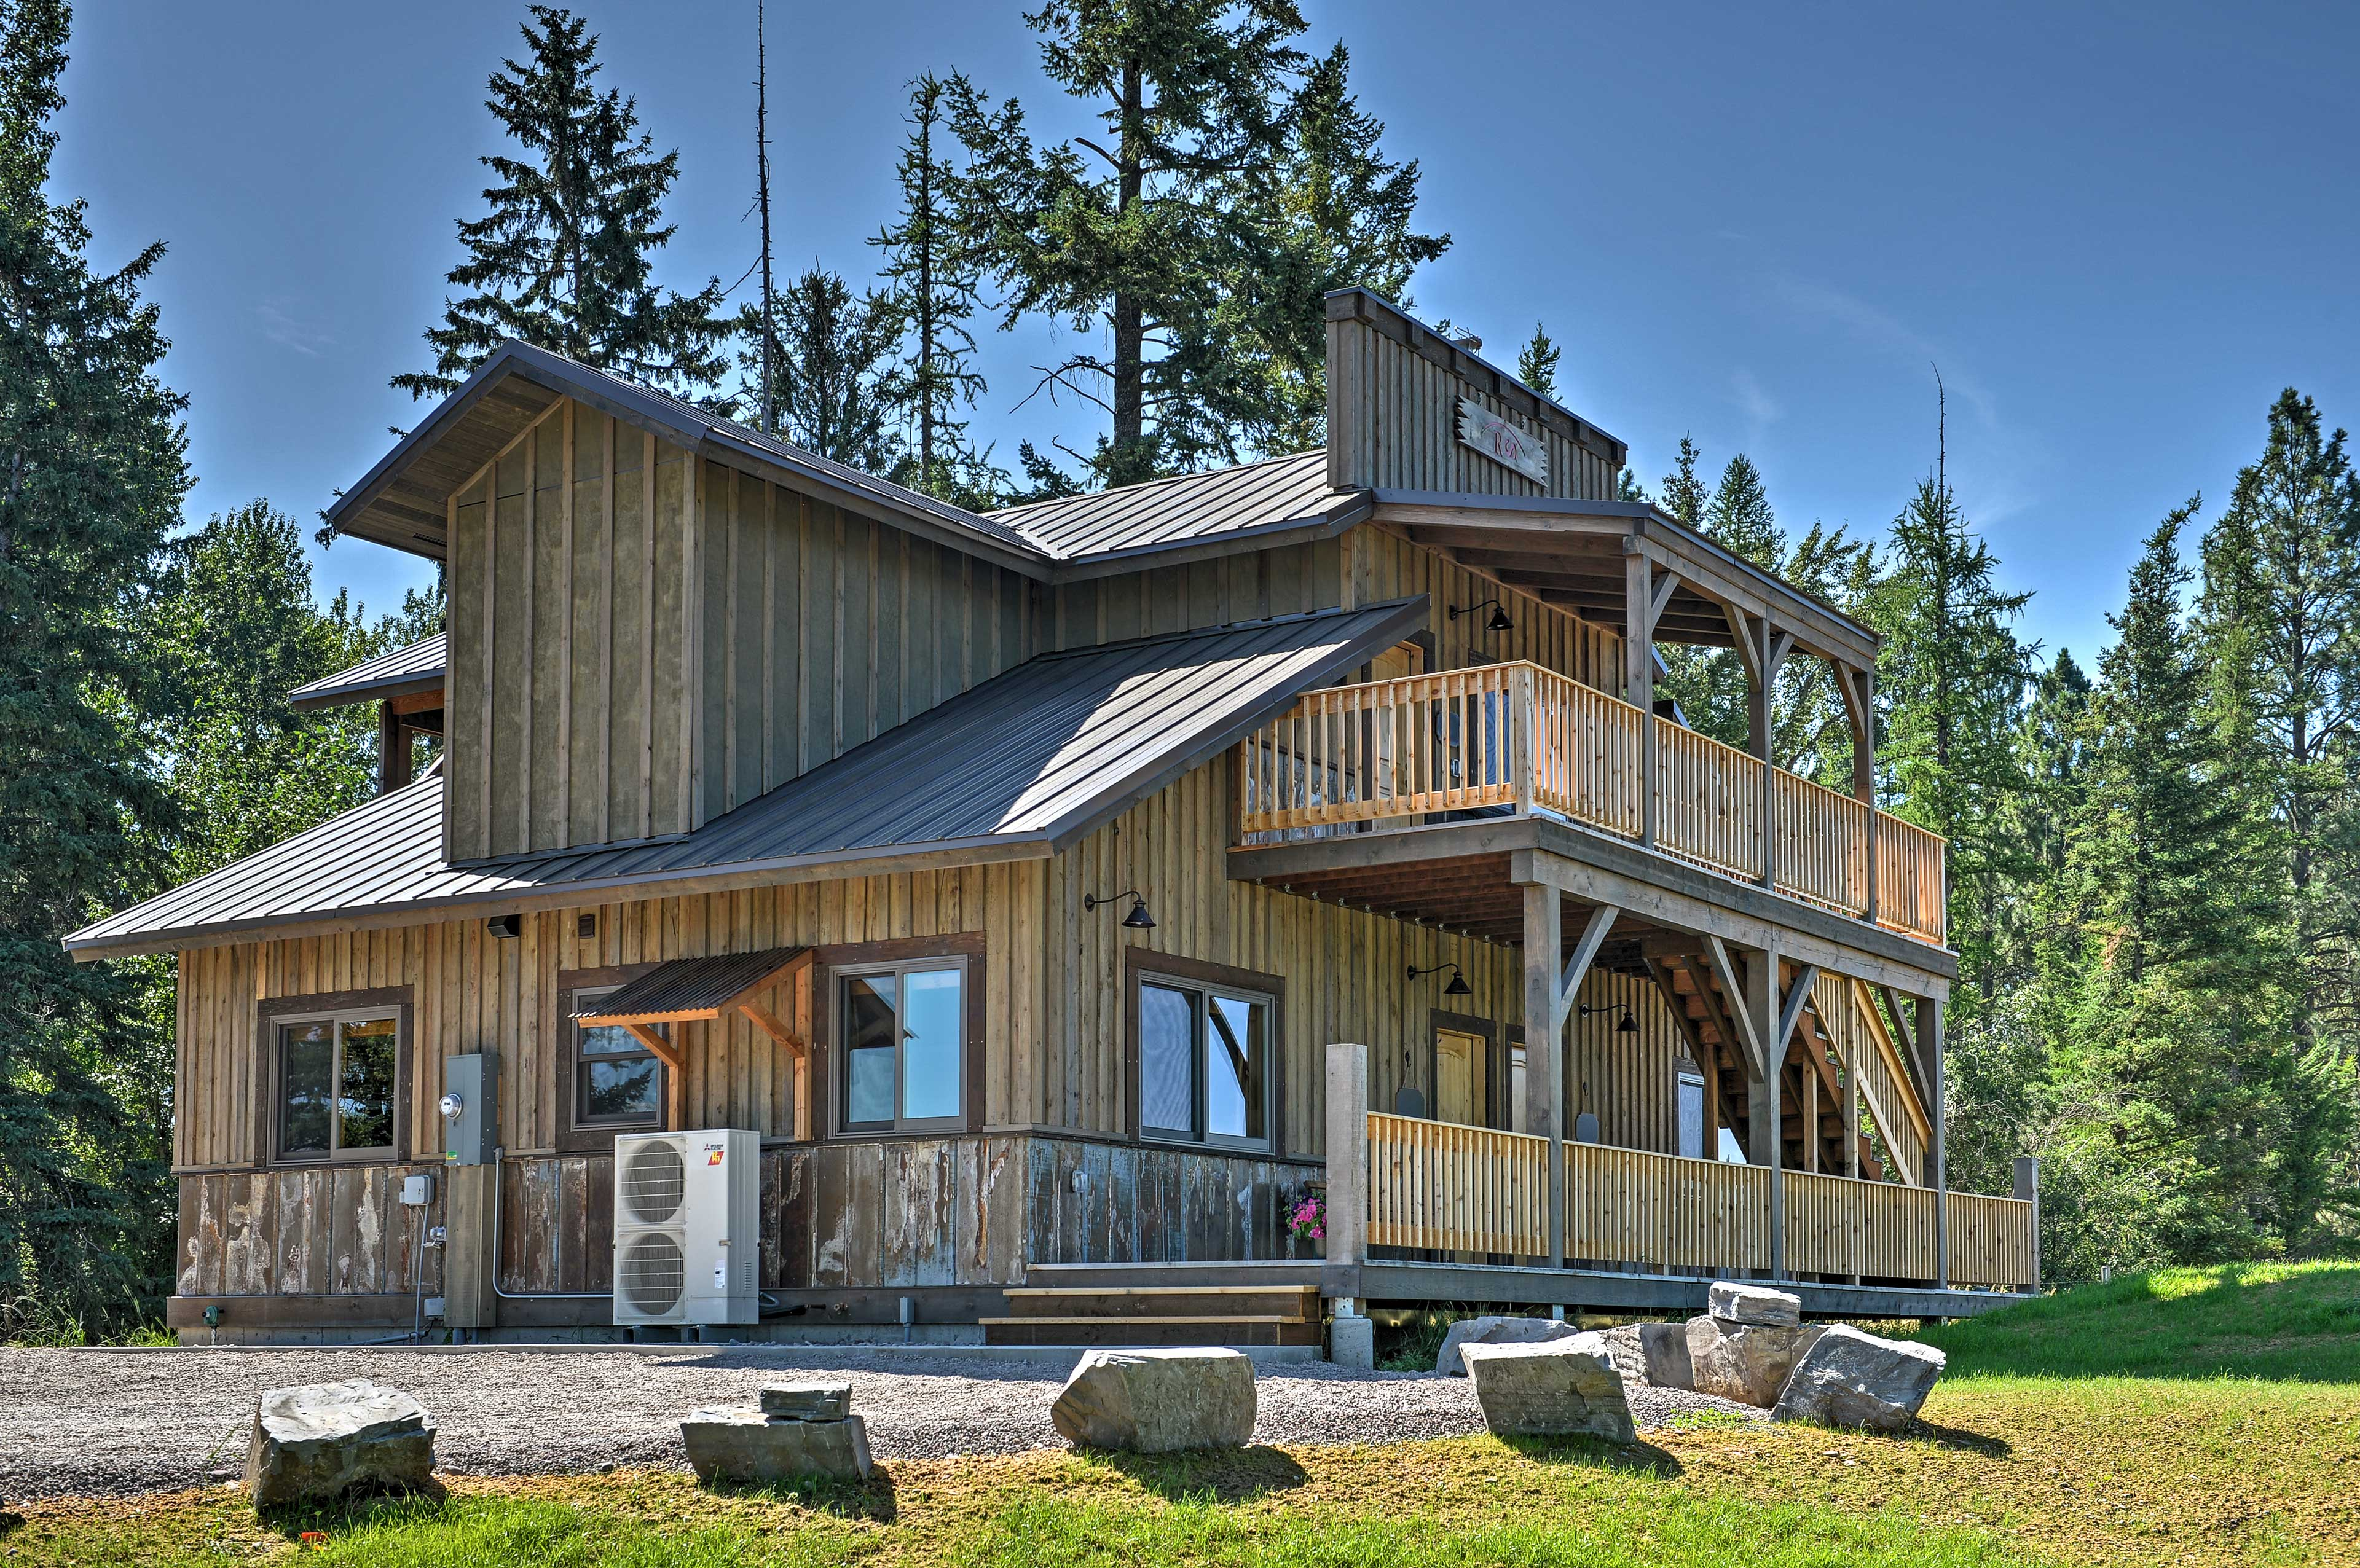 This home is ideally situated near national parks, trails and more!